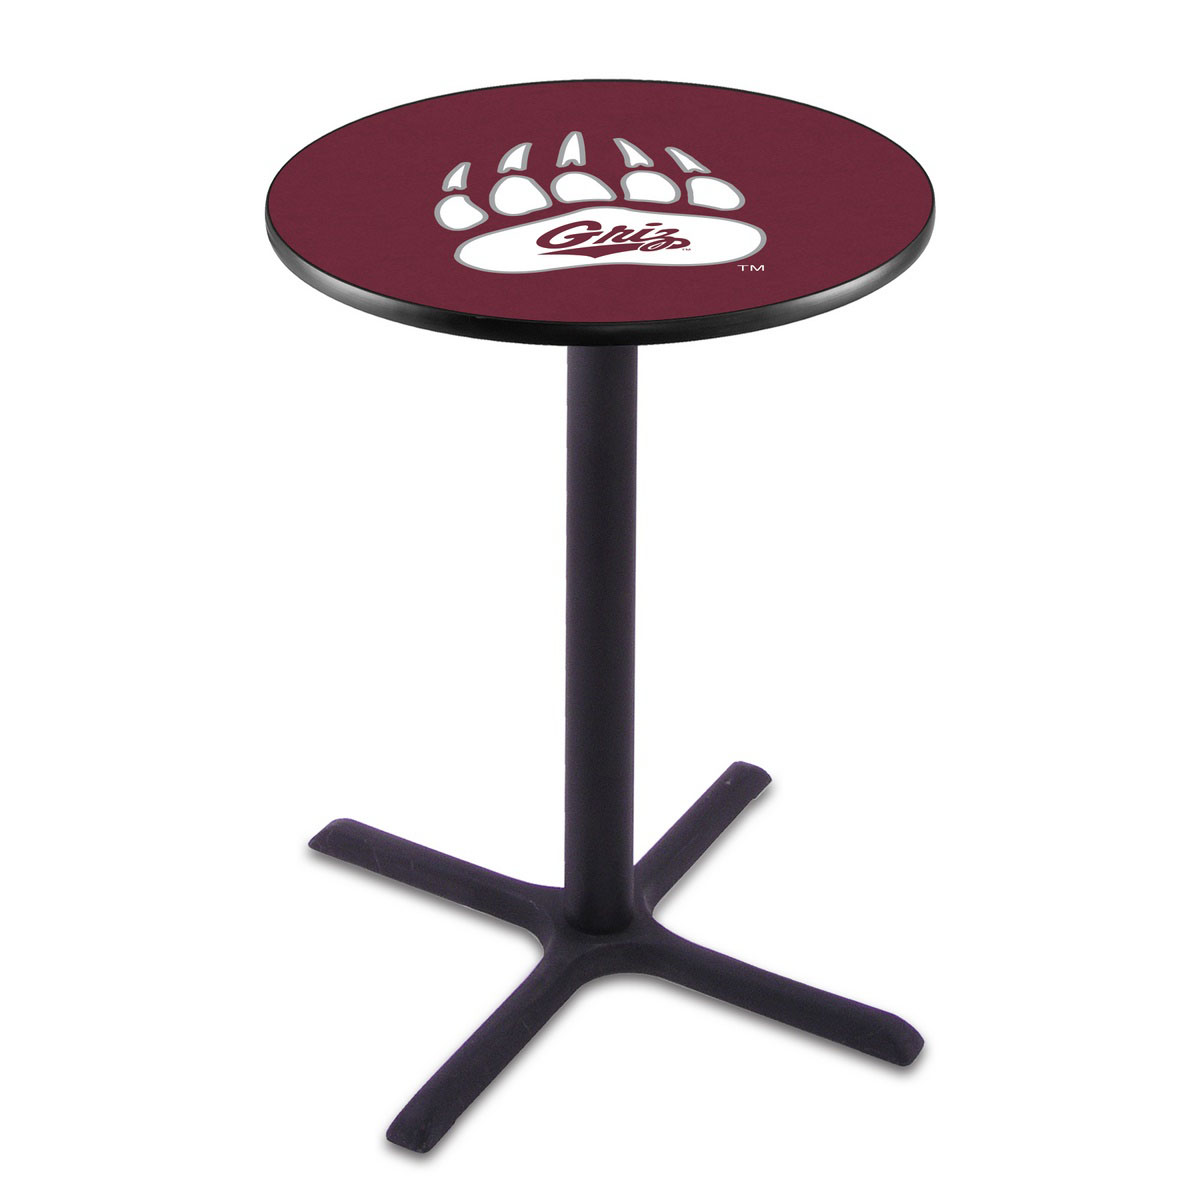 Design Montana Wrinkle Pub Table Product Photo